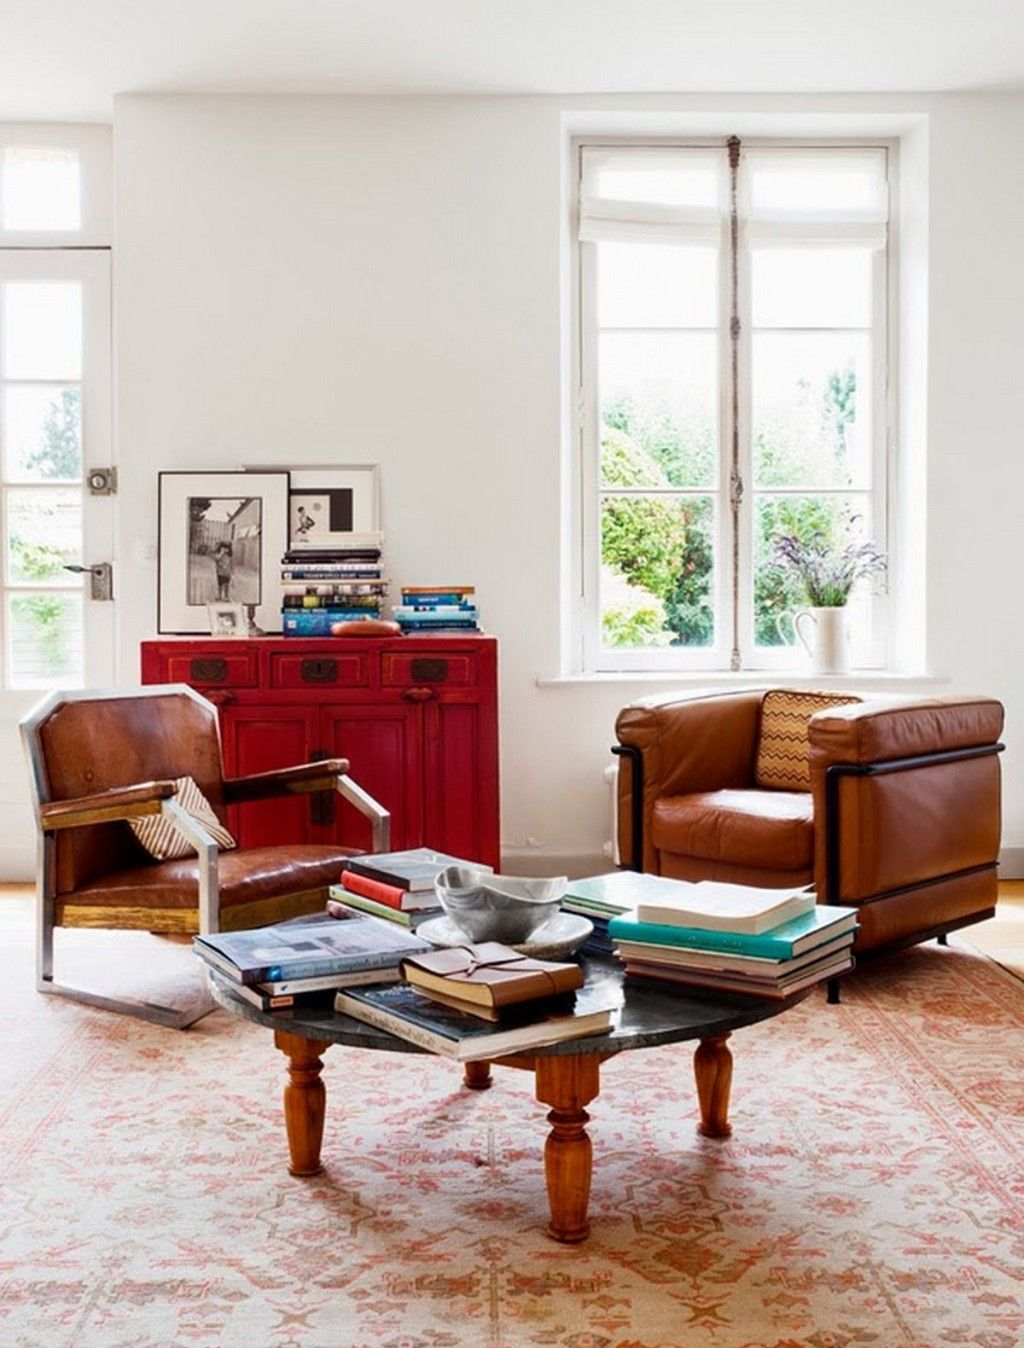 Perfect Interior: Charming Country House With Timeles Interiors With Brown Leather  Sofa Arm Chair Also Red Wooden Cabinet Drawer And Round Coffee Table Also  White ... Amazing Ideas